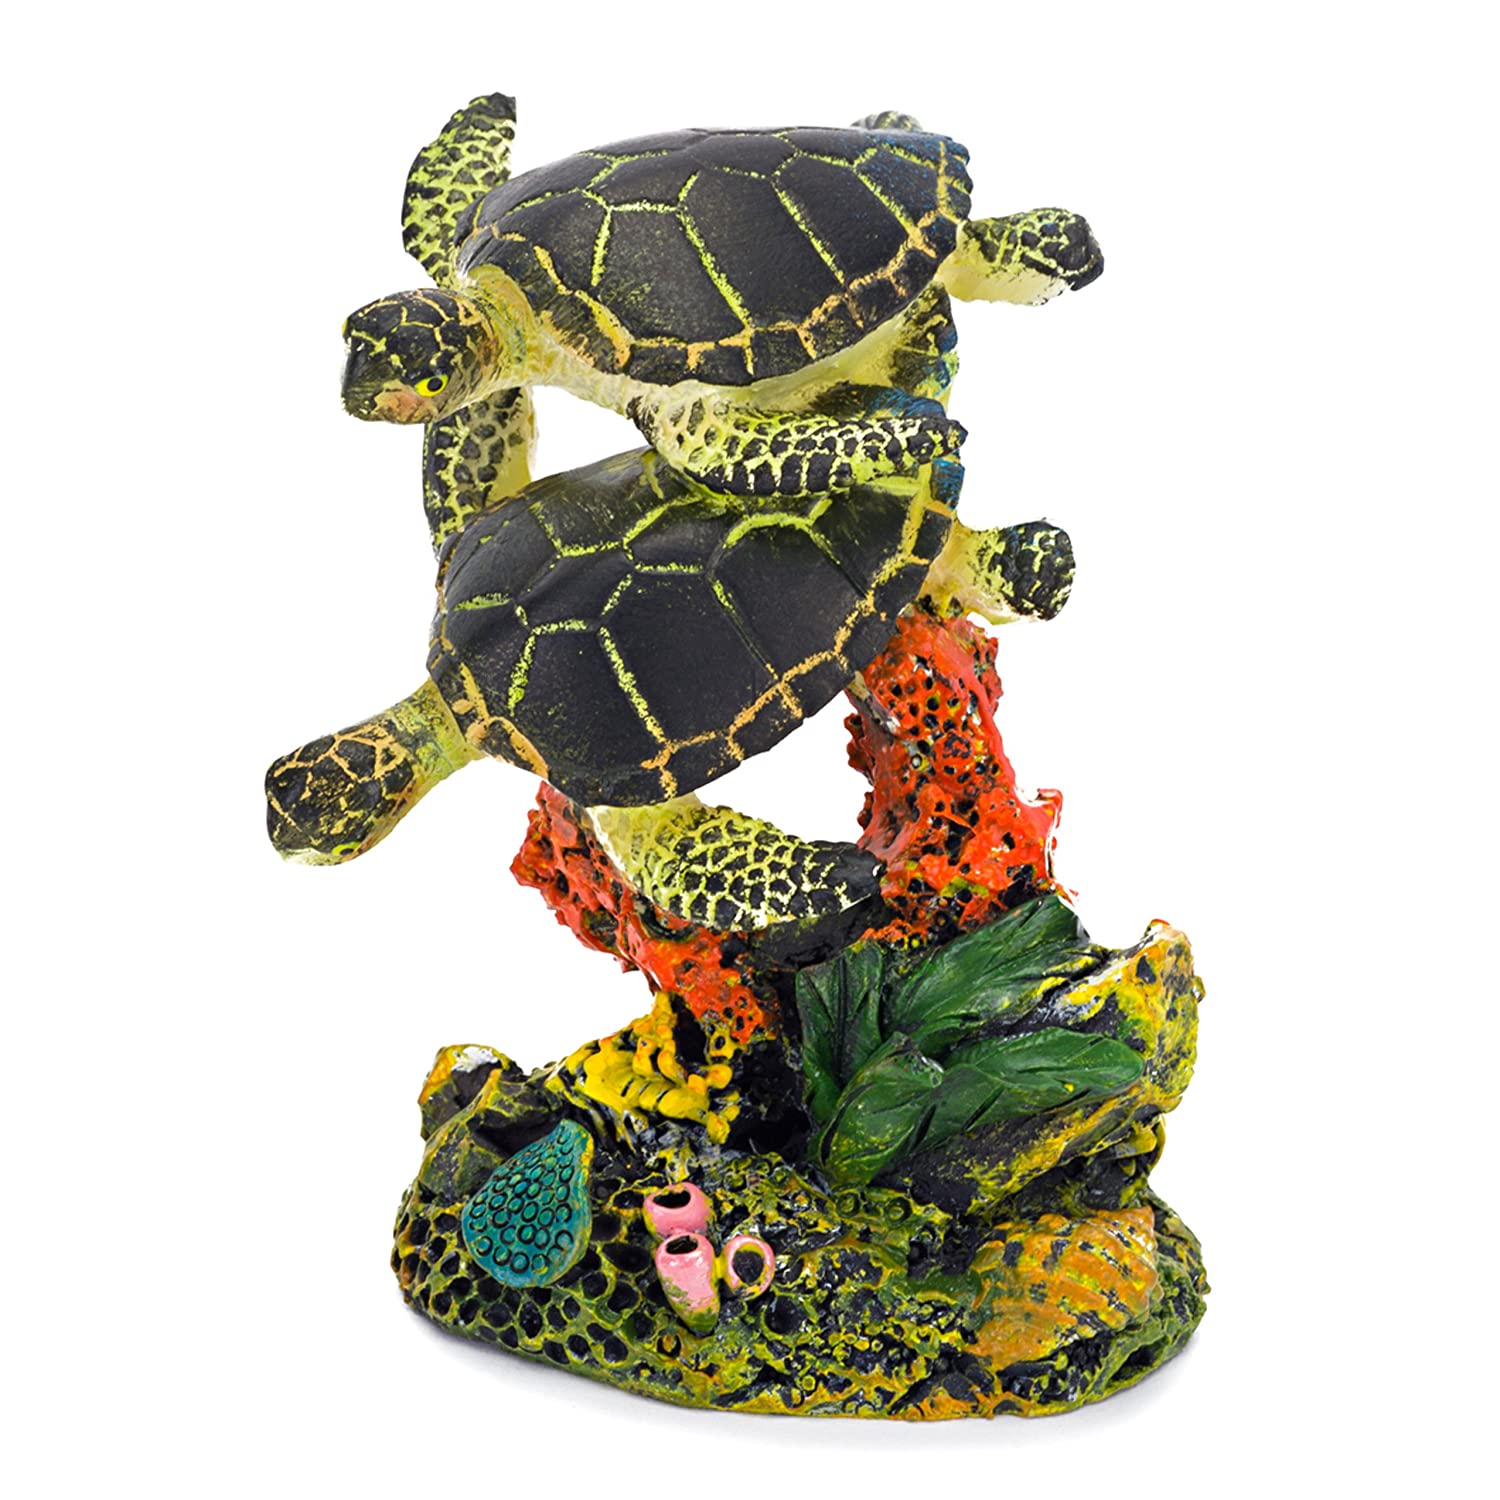 Turtle Tank Decor Amazoncom Penn Plax Swimming Sea Turtle Aquarium Decor Small